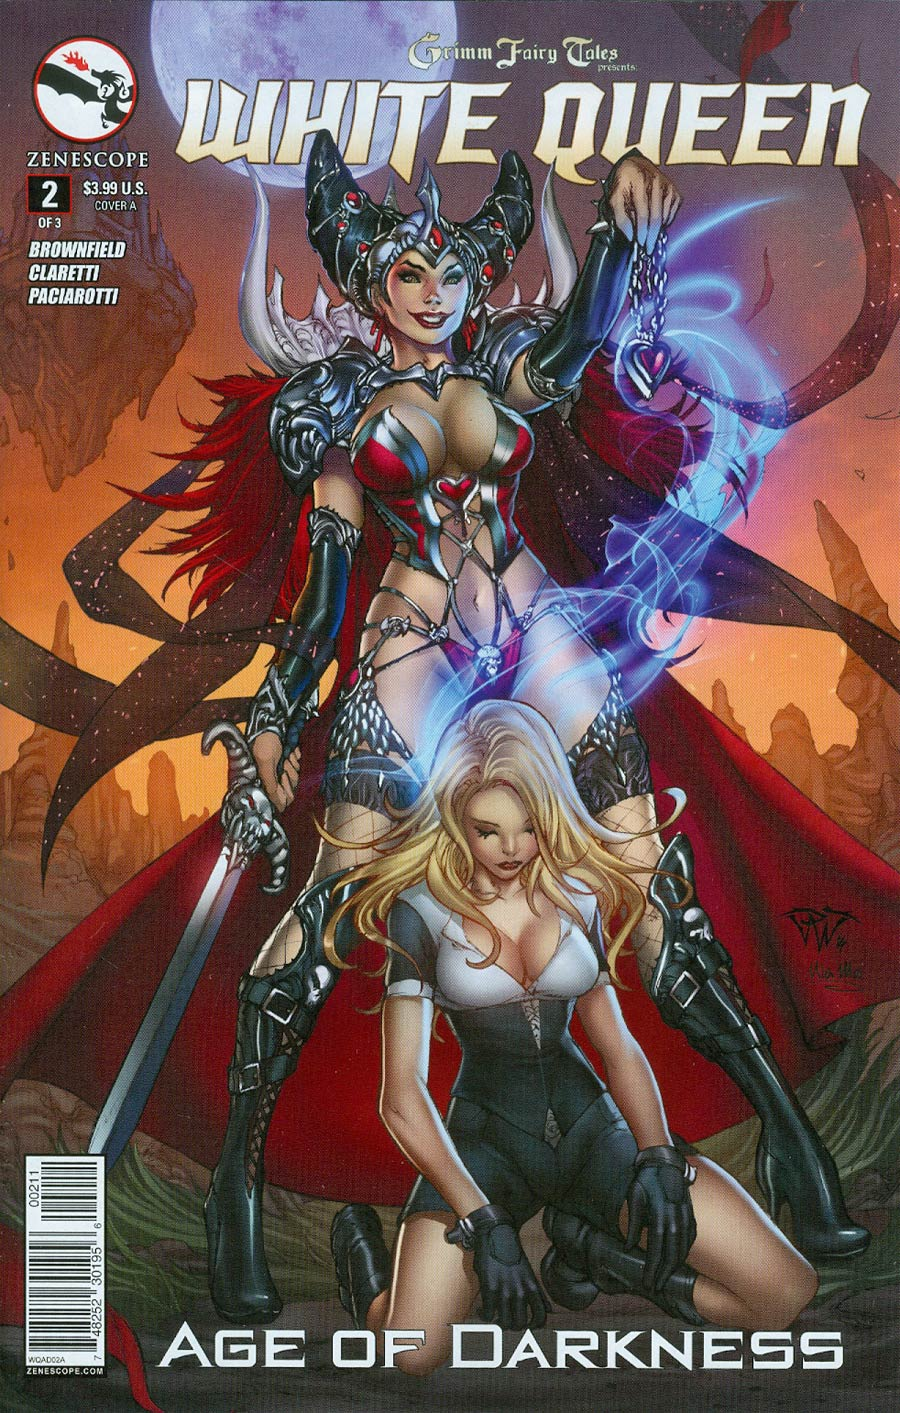 Grimm Fairy Tales Presents White Queen #2 Cover A Paolo Pantalena (Age Of Darkness Tie-In)